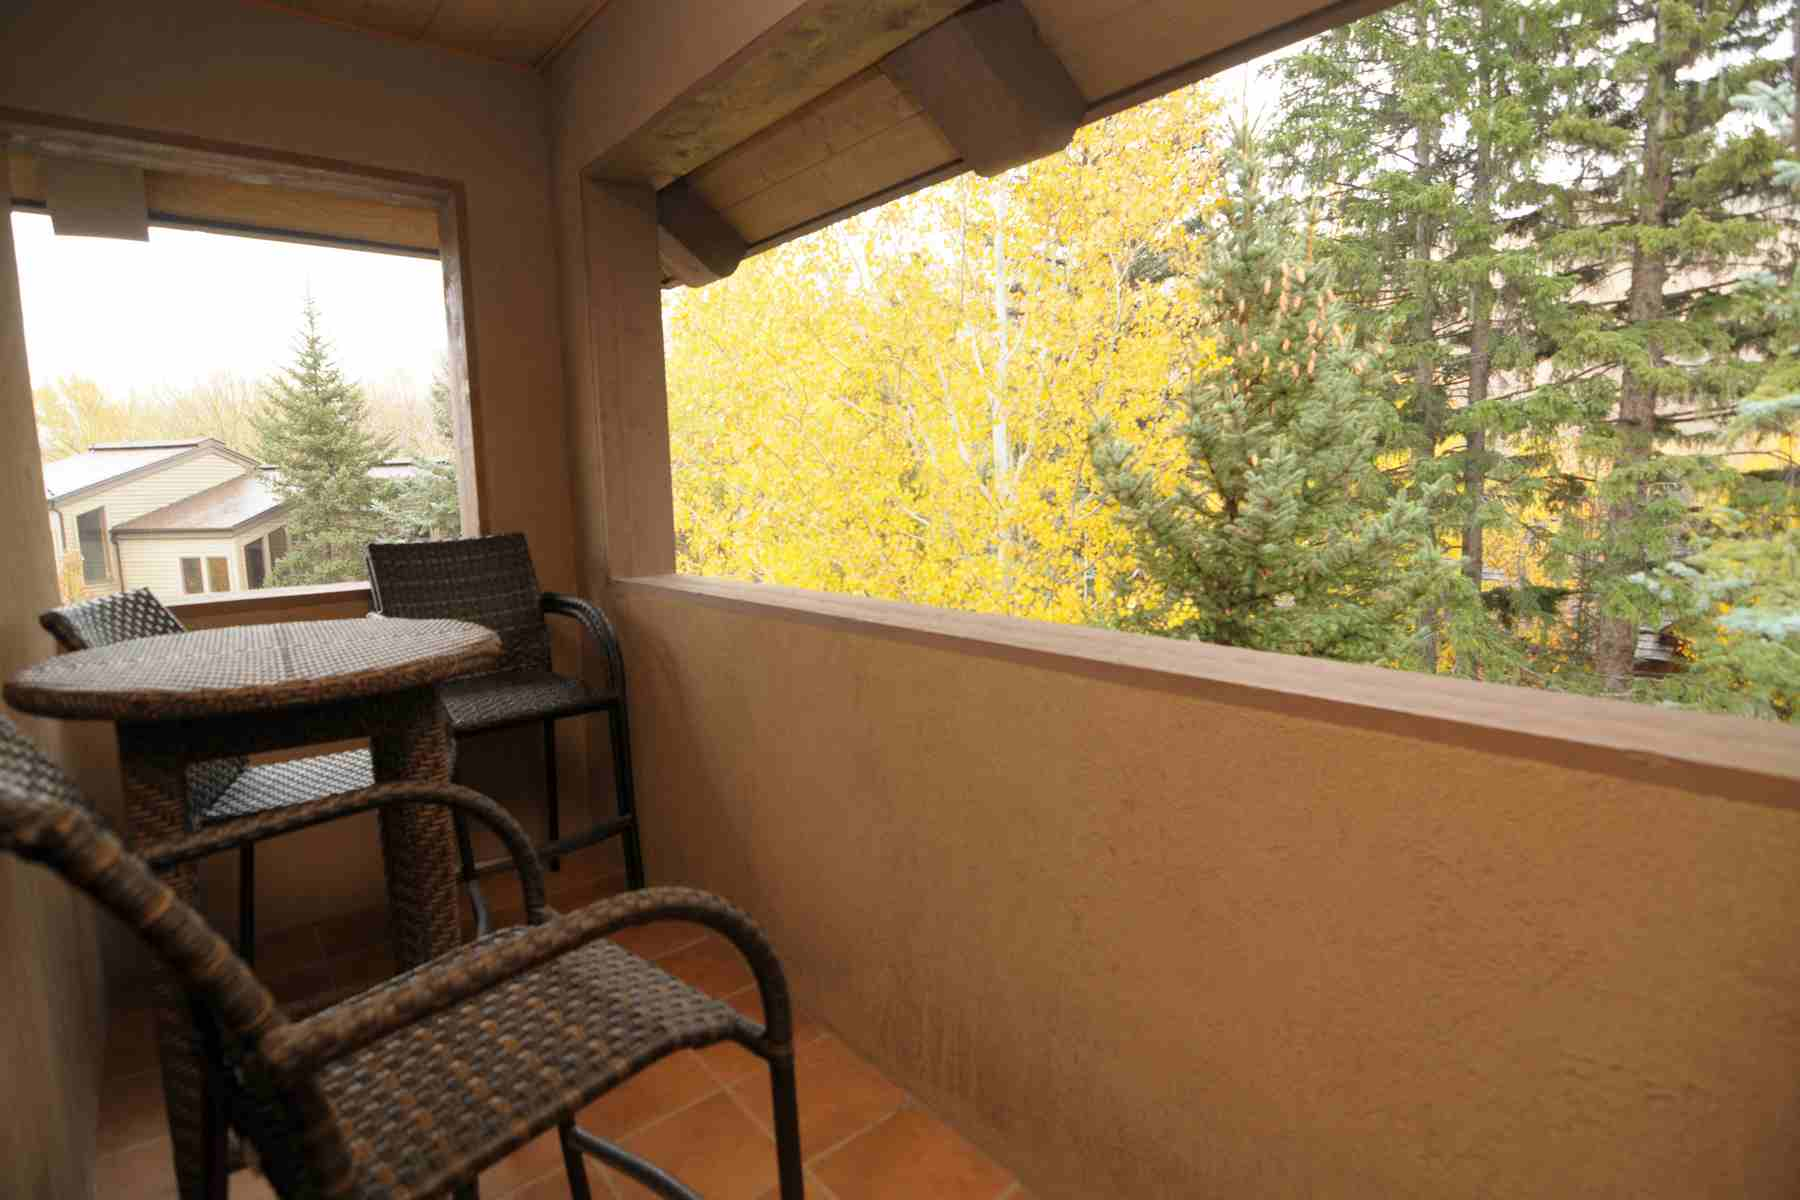 Additional photo for property listing at Exceptional In Town Condo 680 E Sun Valley Rd #1 凯彻姆, 爱达荷州 83340 美国